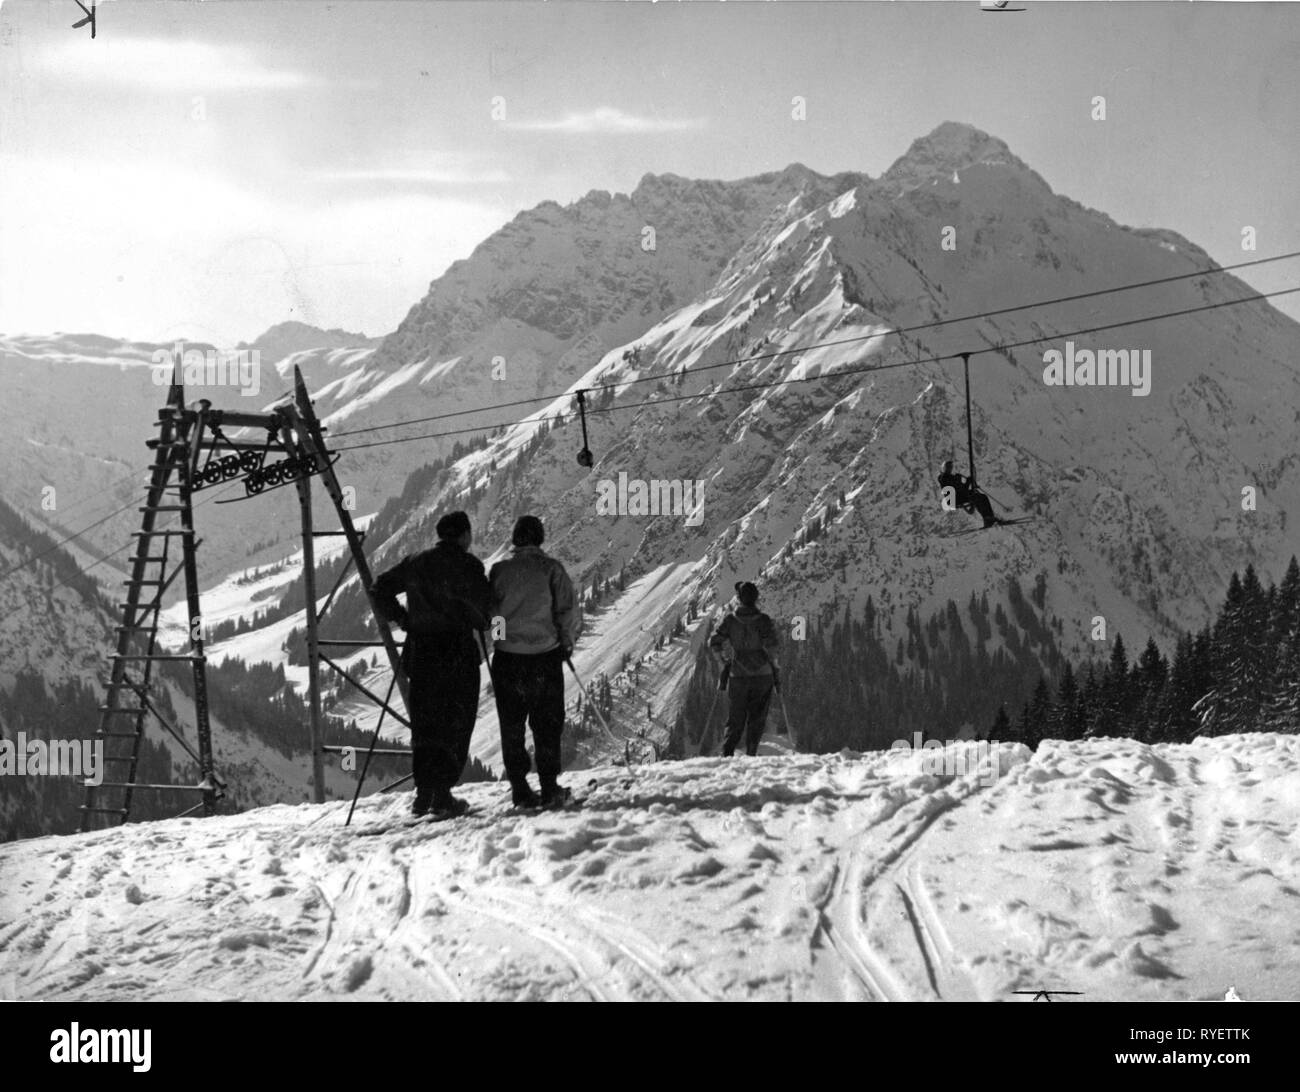 sports, winter sports, skiing, skiers at the mountain top station of the ski lift, 1954, Additional-Rights-Clearance-Info-Not-Available Stock Photo